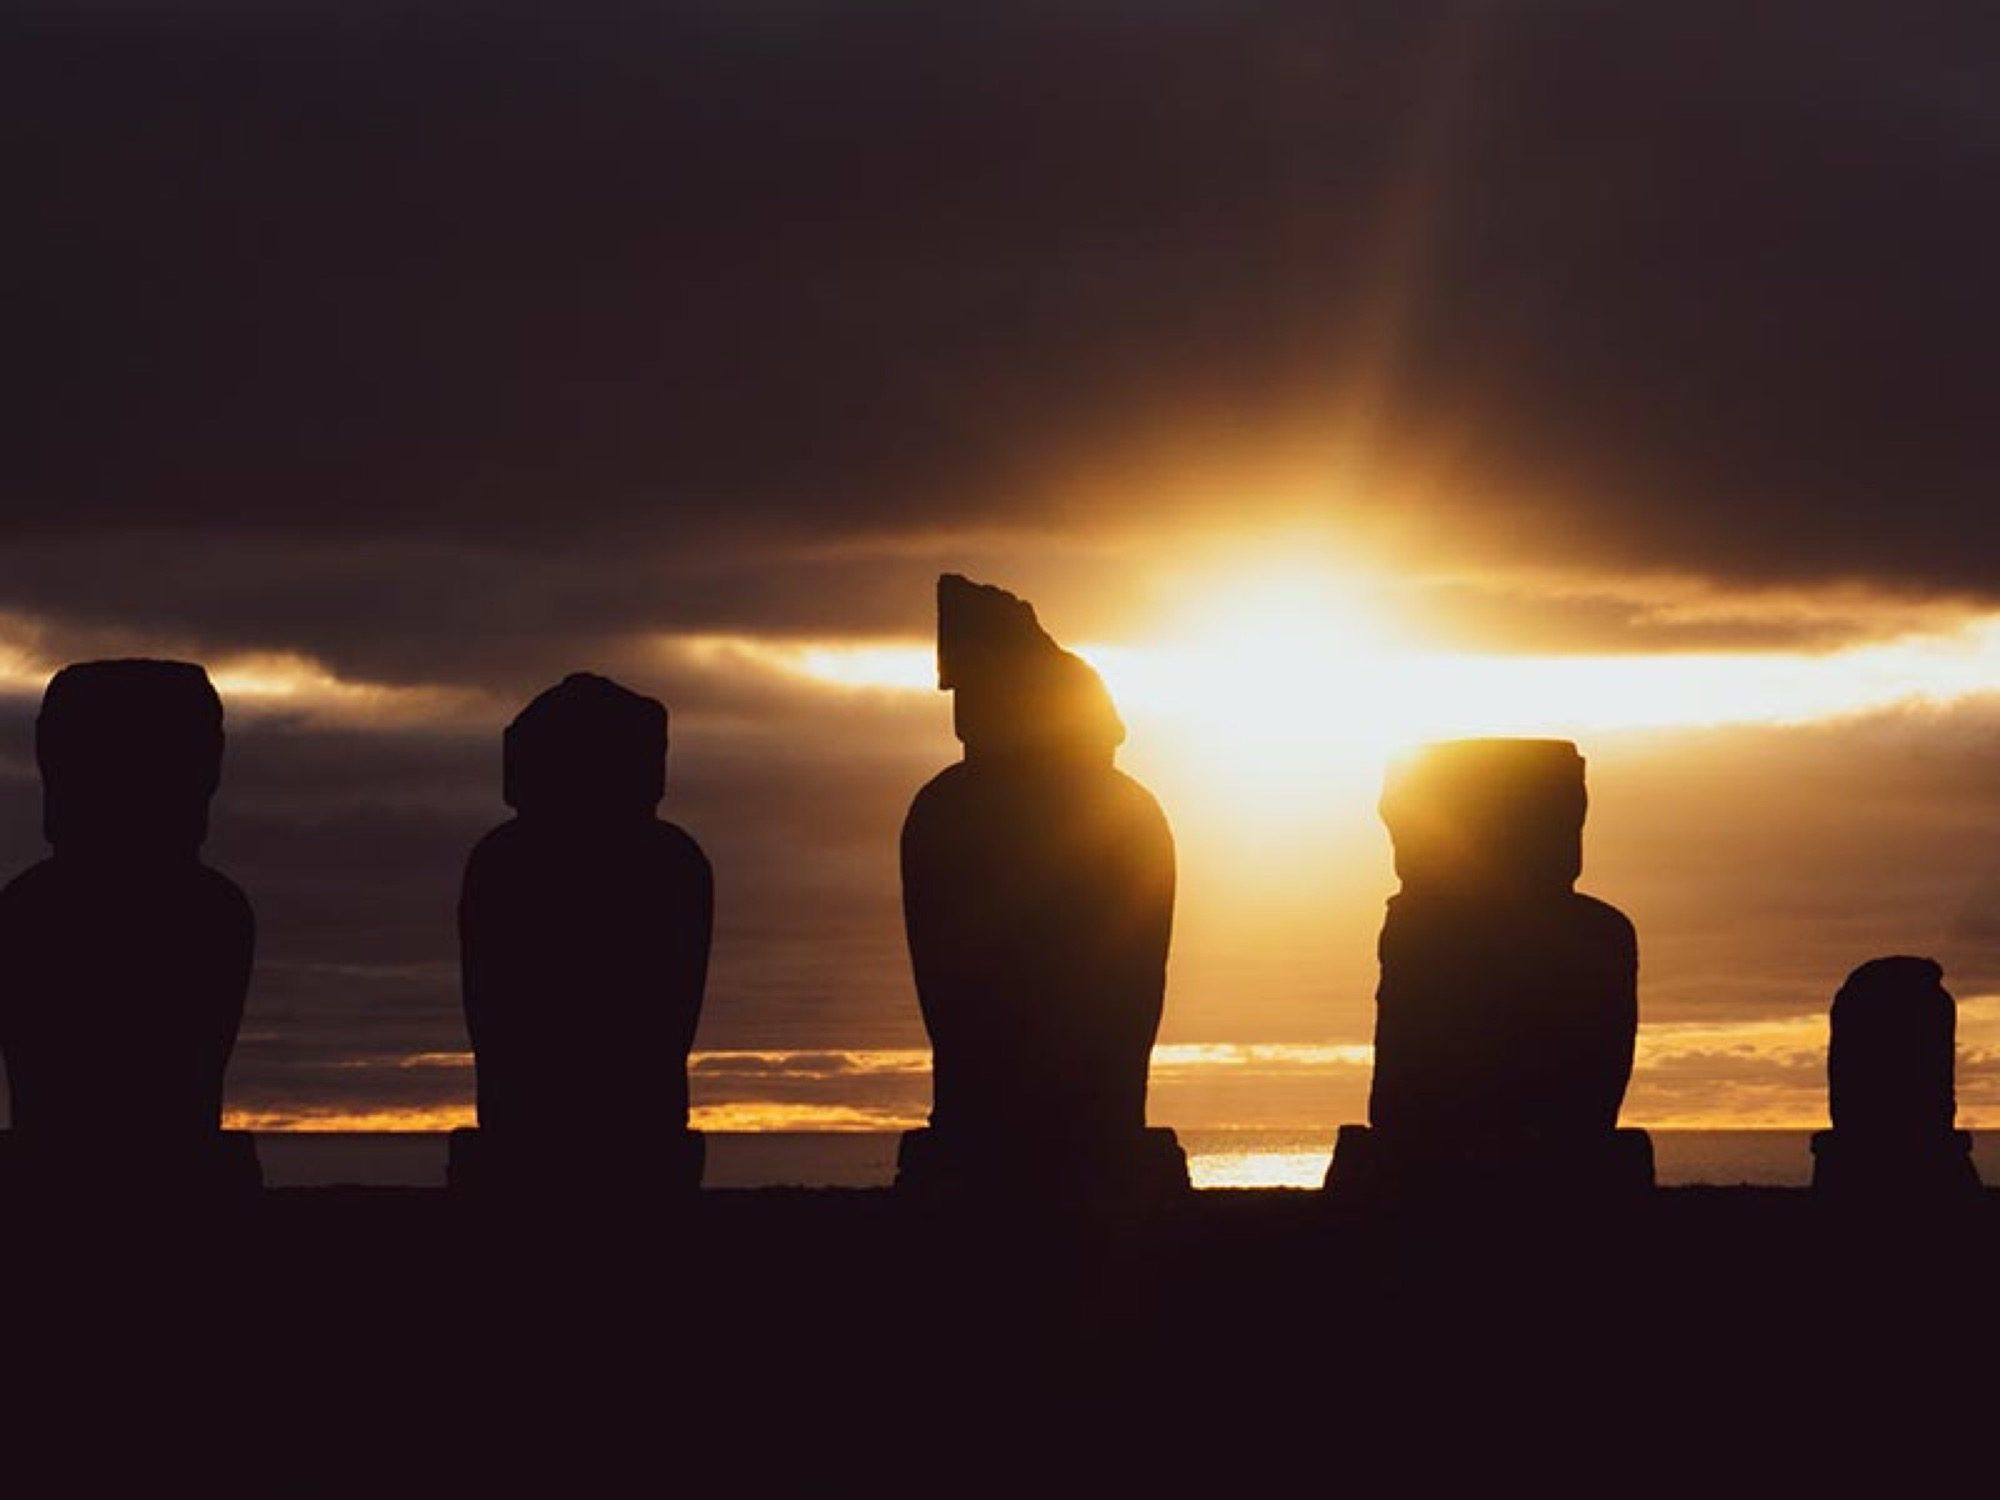 CHI-easter-island-sunset-ltb-free